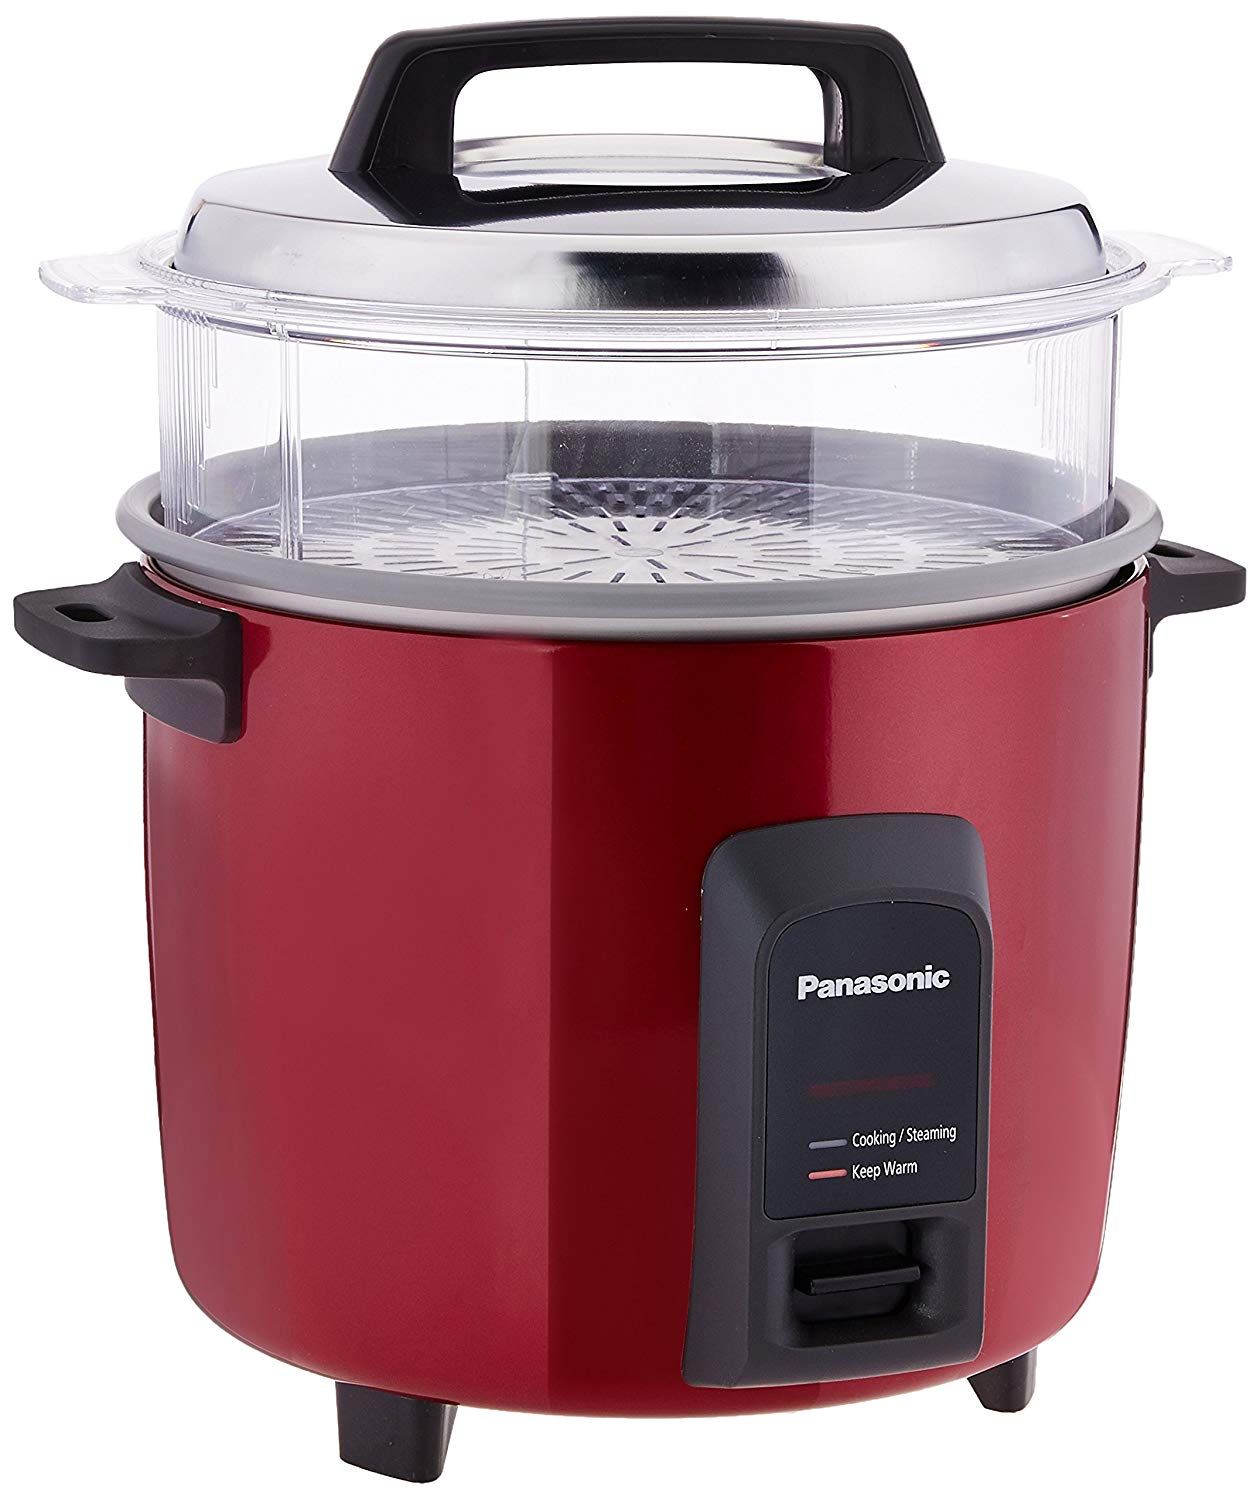 hight resolution of this burgundy electric rice cooker with a clear steaming basket is a must for every kitchen it also has a higher cooking capacity best for big families